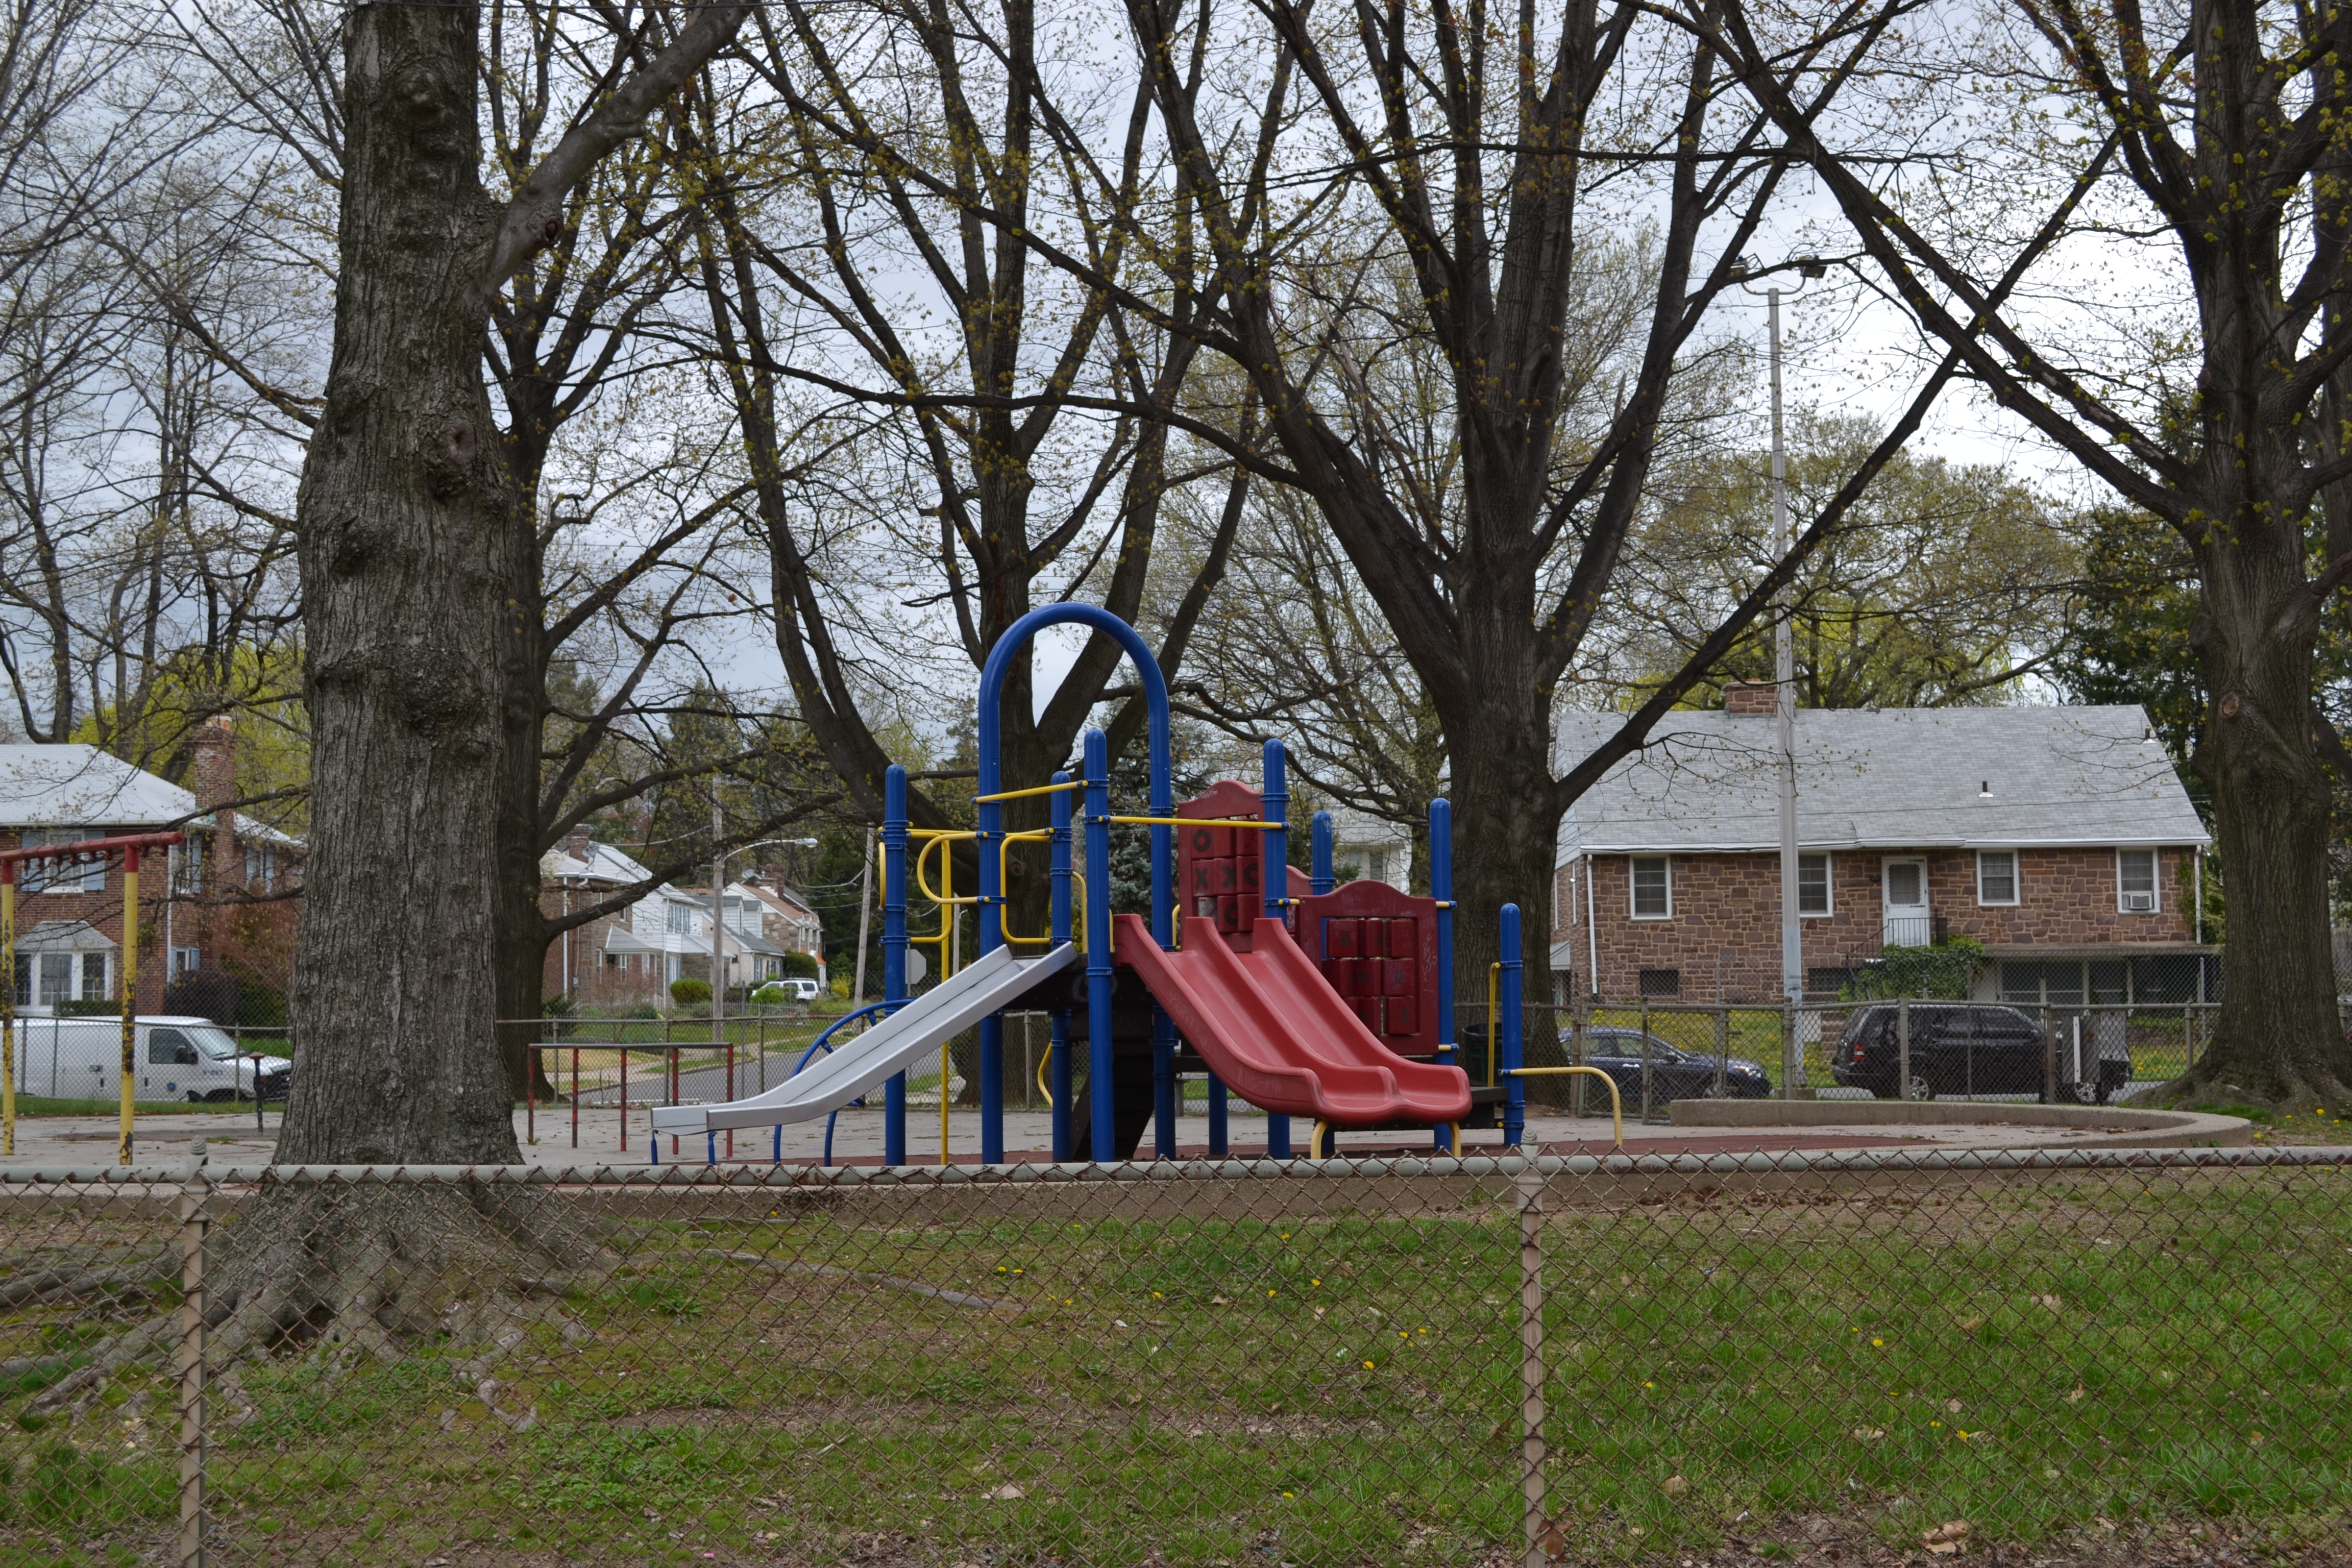 Today Sturgis Playground has two main areas with playground equipment